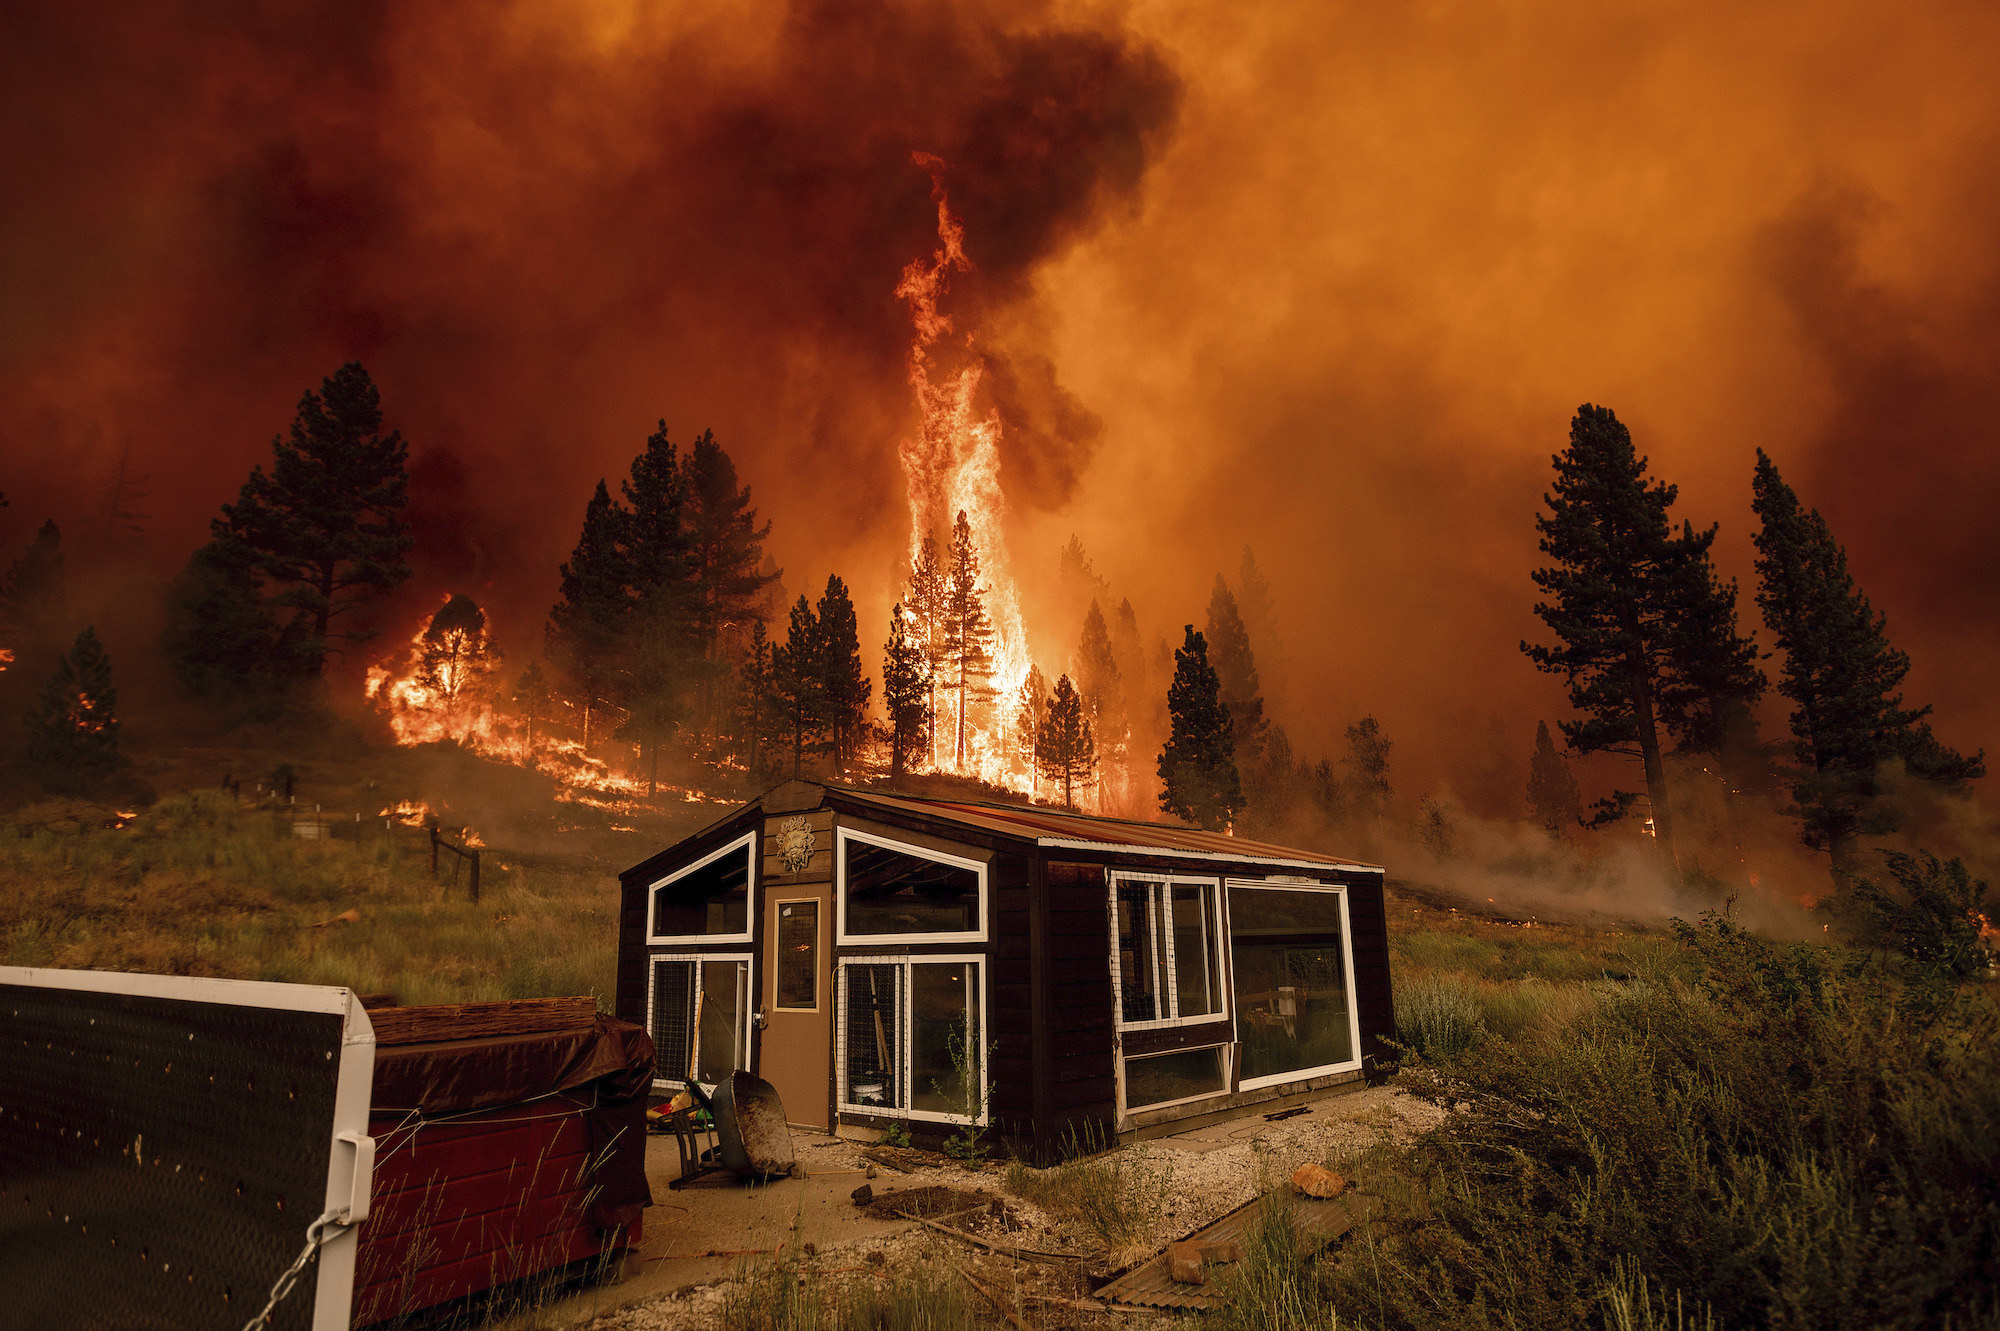 A small structure in the foreground as a hilly forest is engulfed in flames behind it